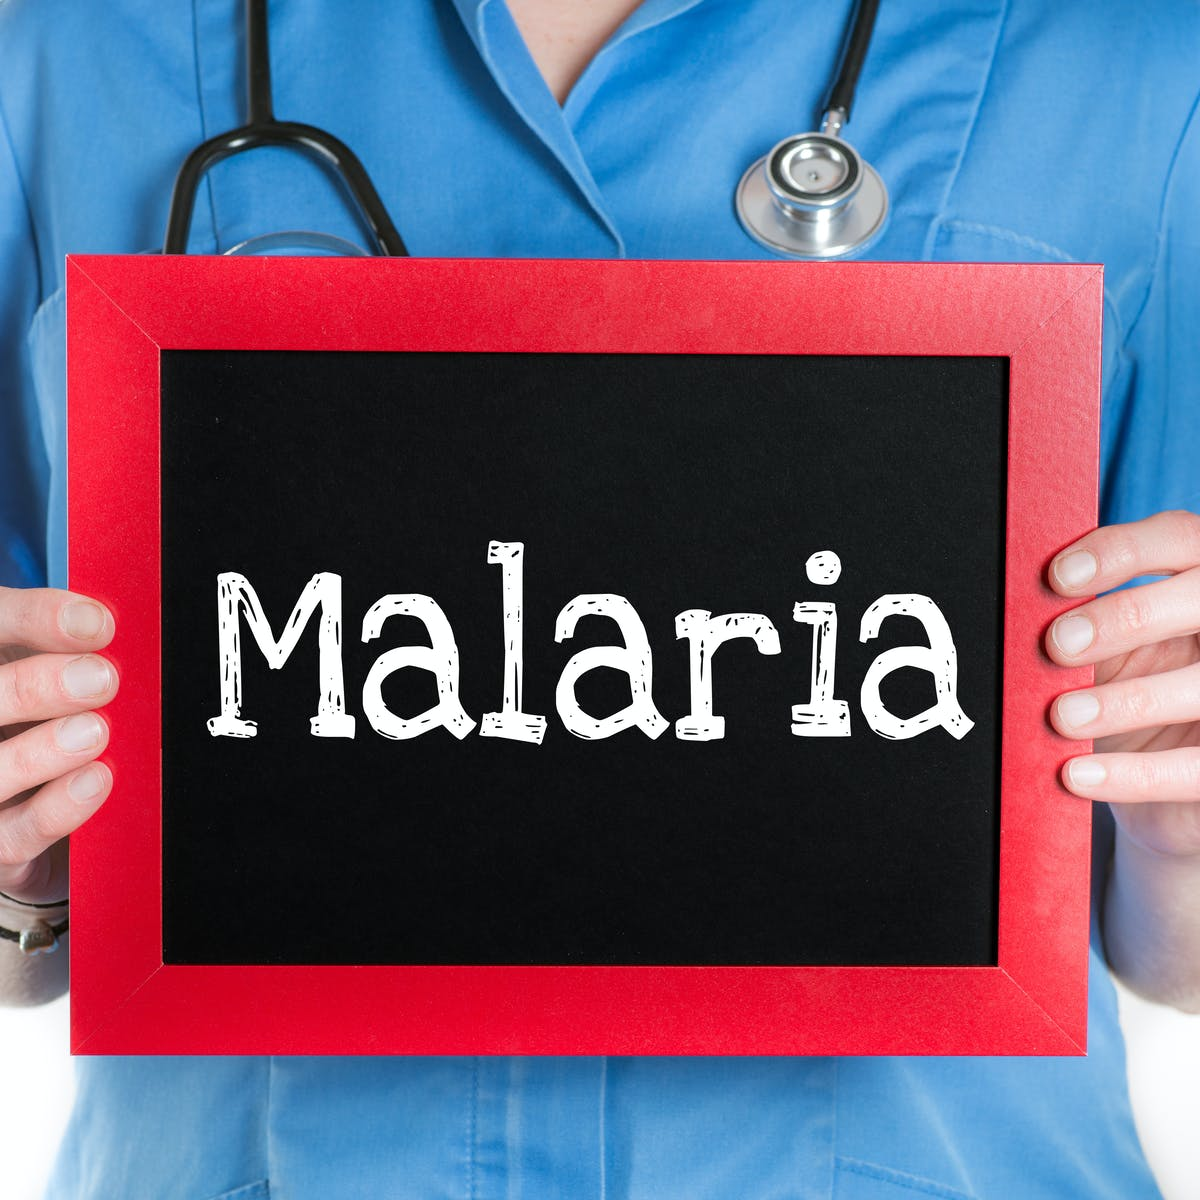 why does malaria reoccur